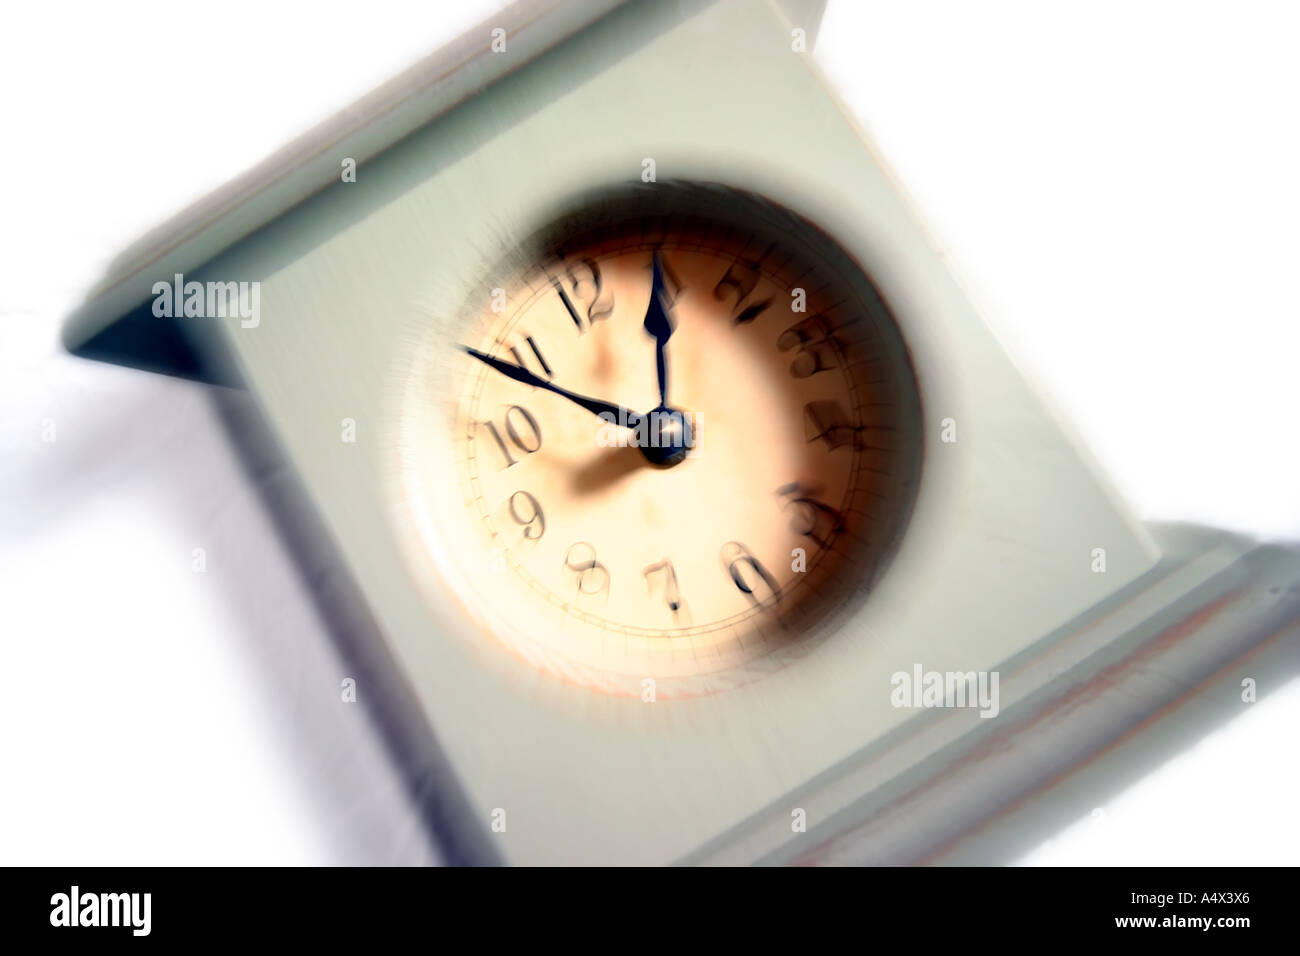 mantle clock - Stock Image